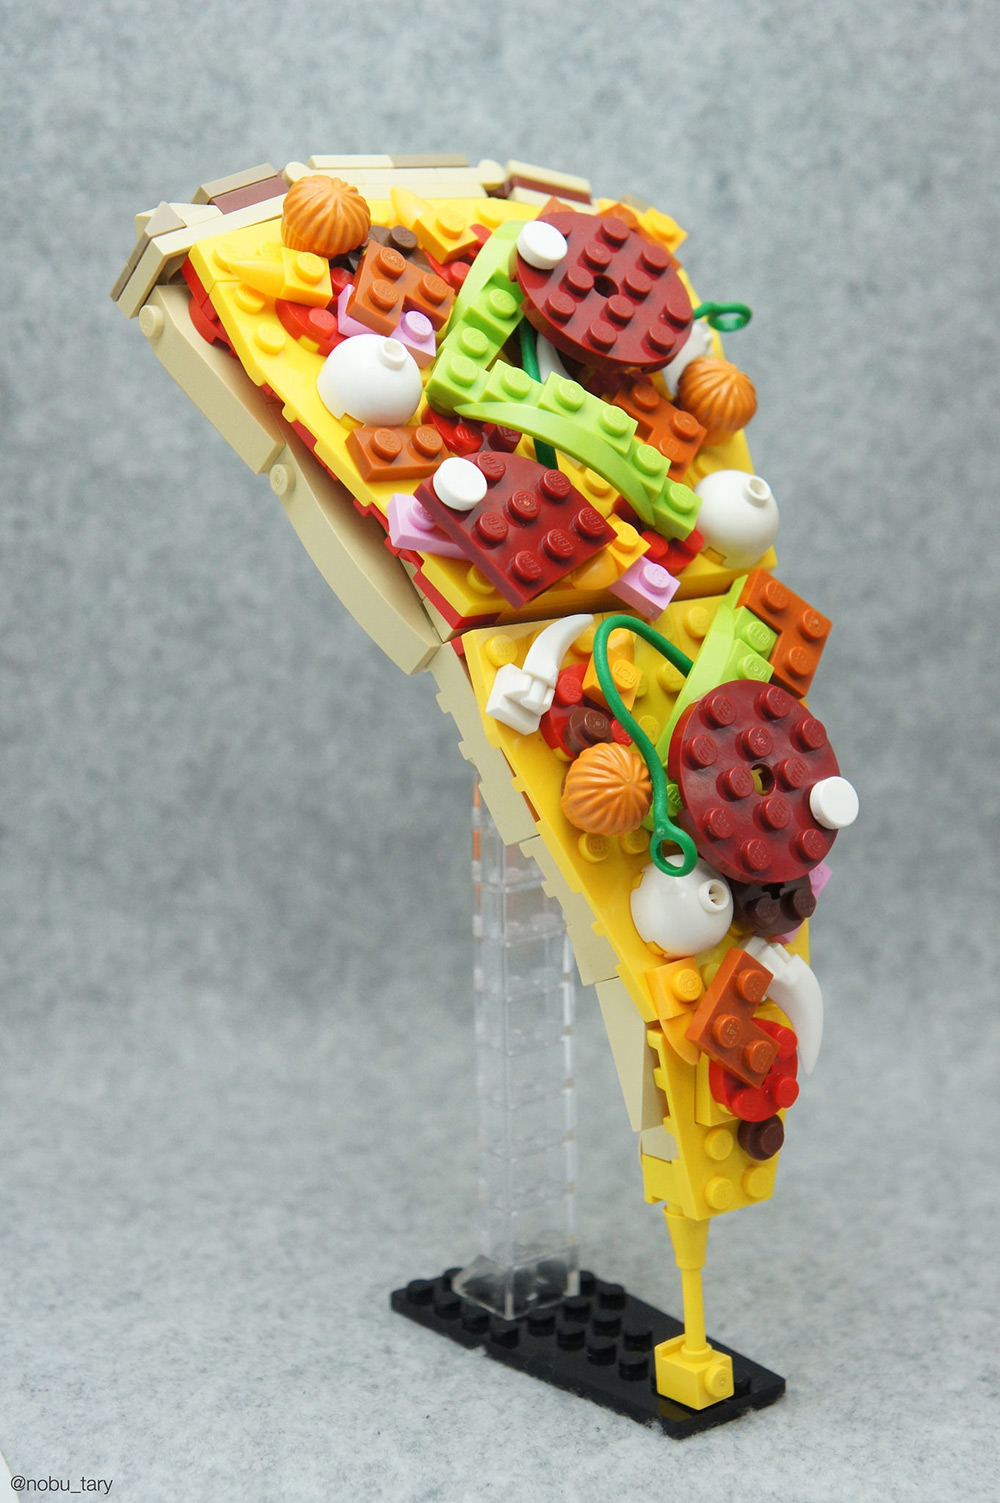 Amazing Lego Food Sculptures By Nobu Tary 2